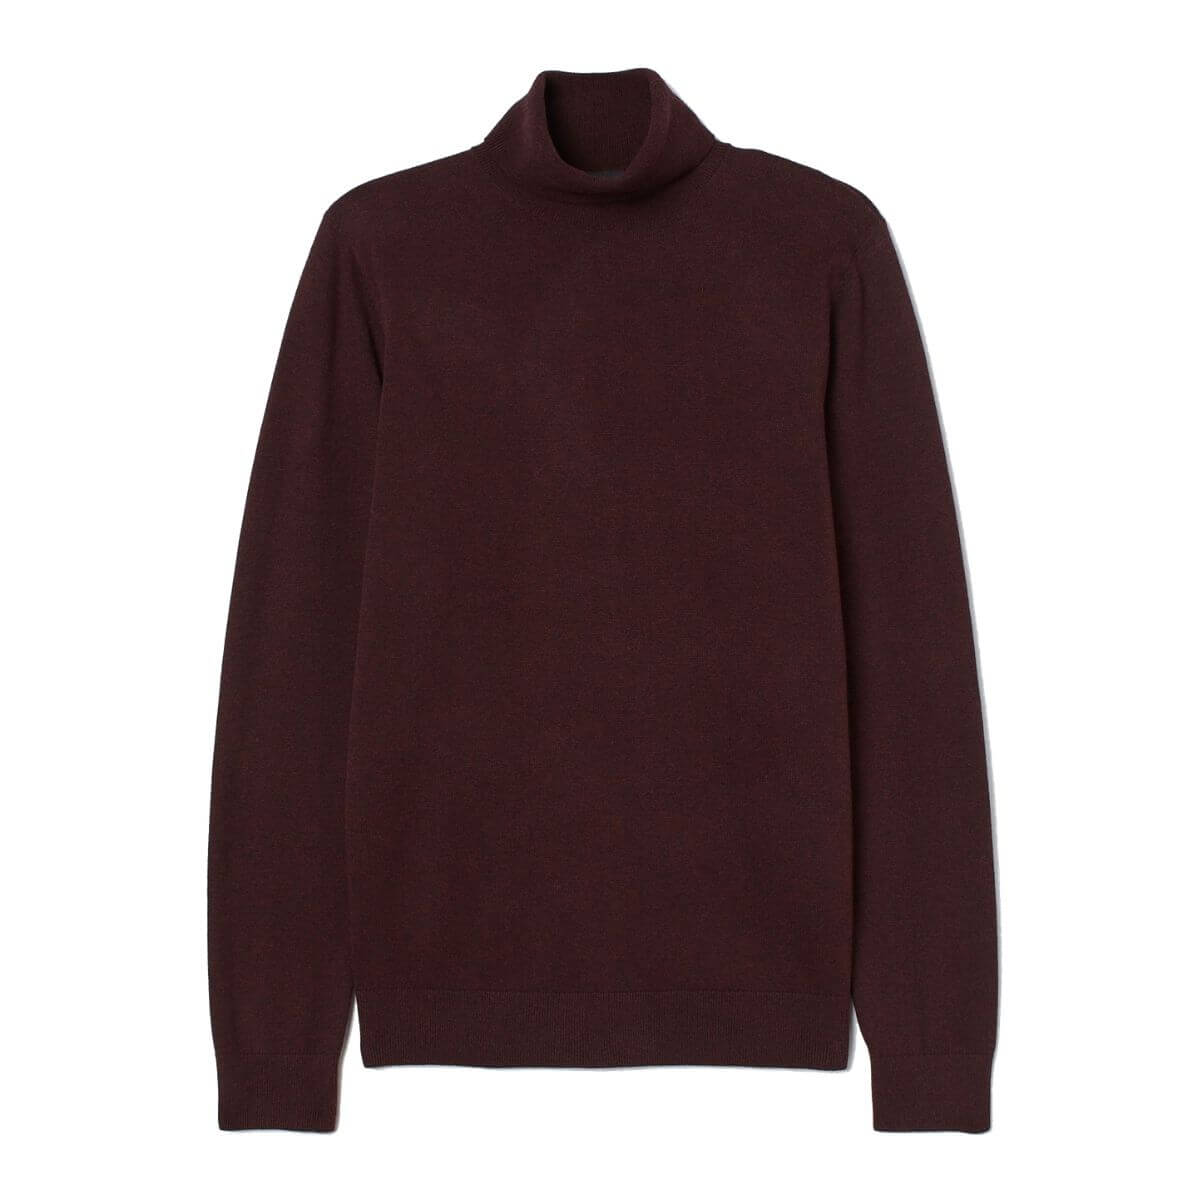 Burgundy turtleneck sweater.